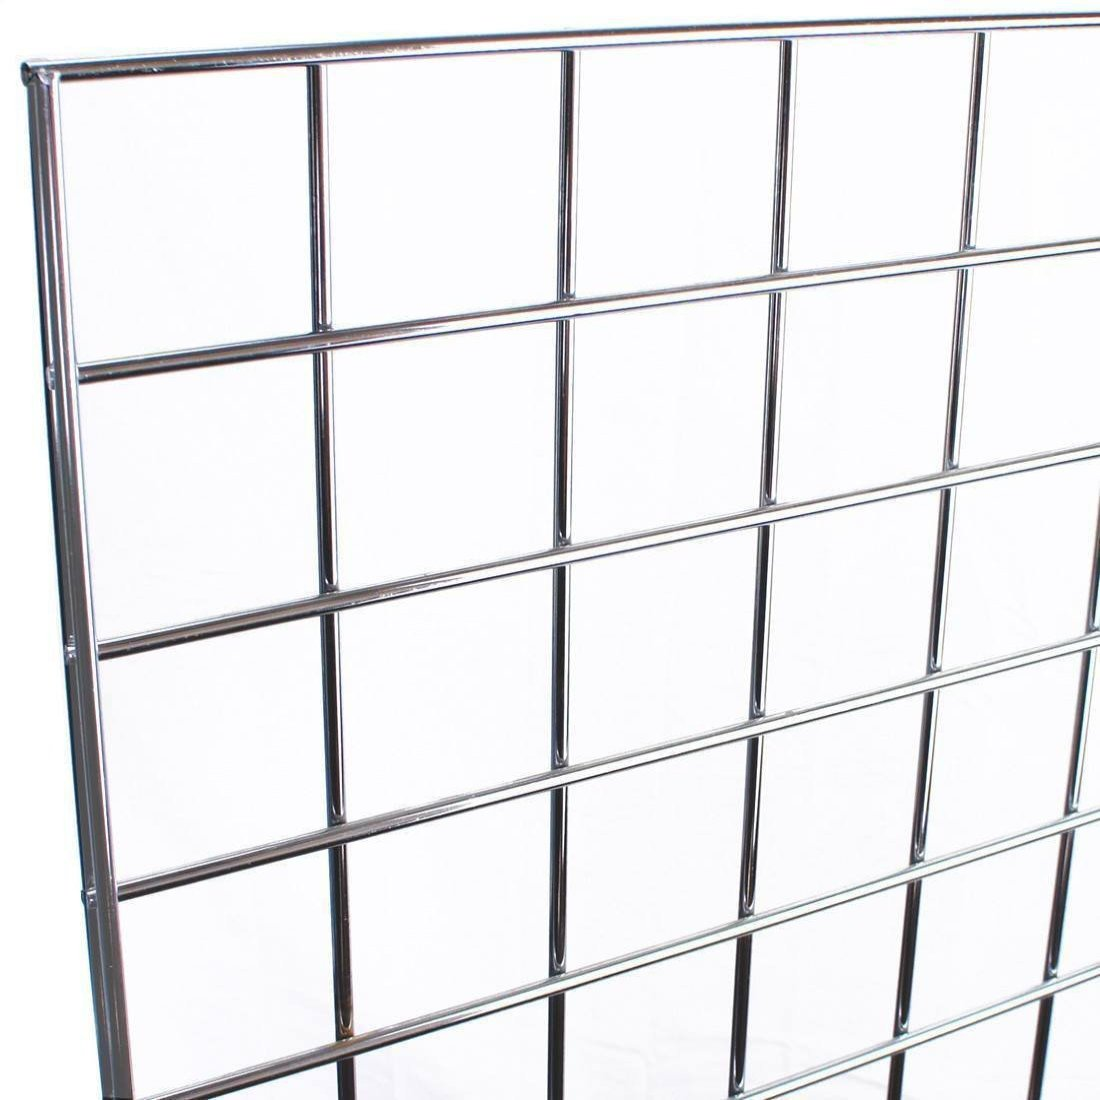 "5 x 12/"" STRAIGHT ARM SQUARE FOR GRIDWALL// GRID WALL MESH CHROME FINISH ACCESSORY"